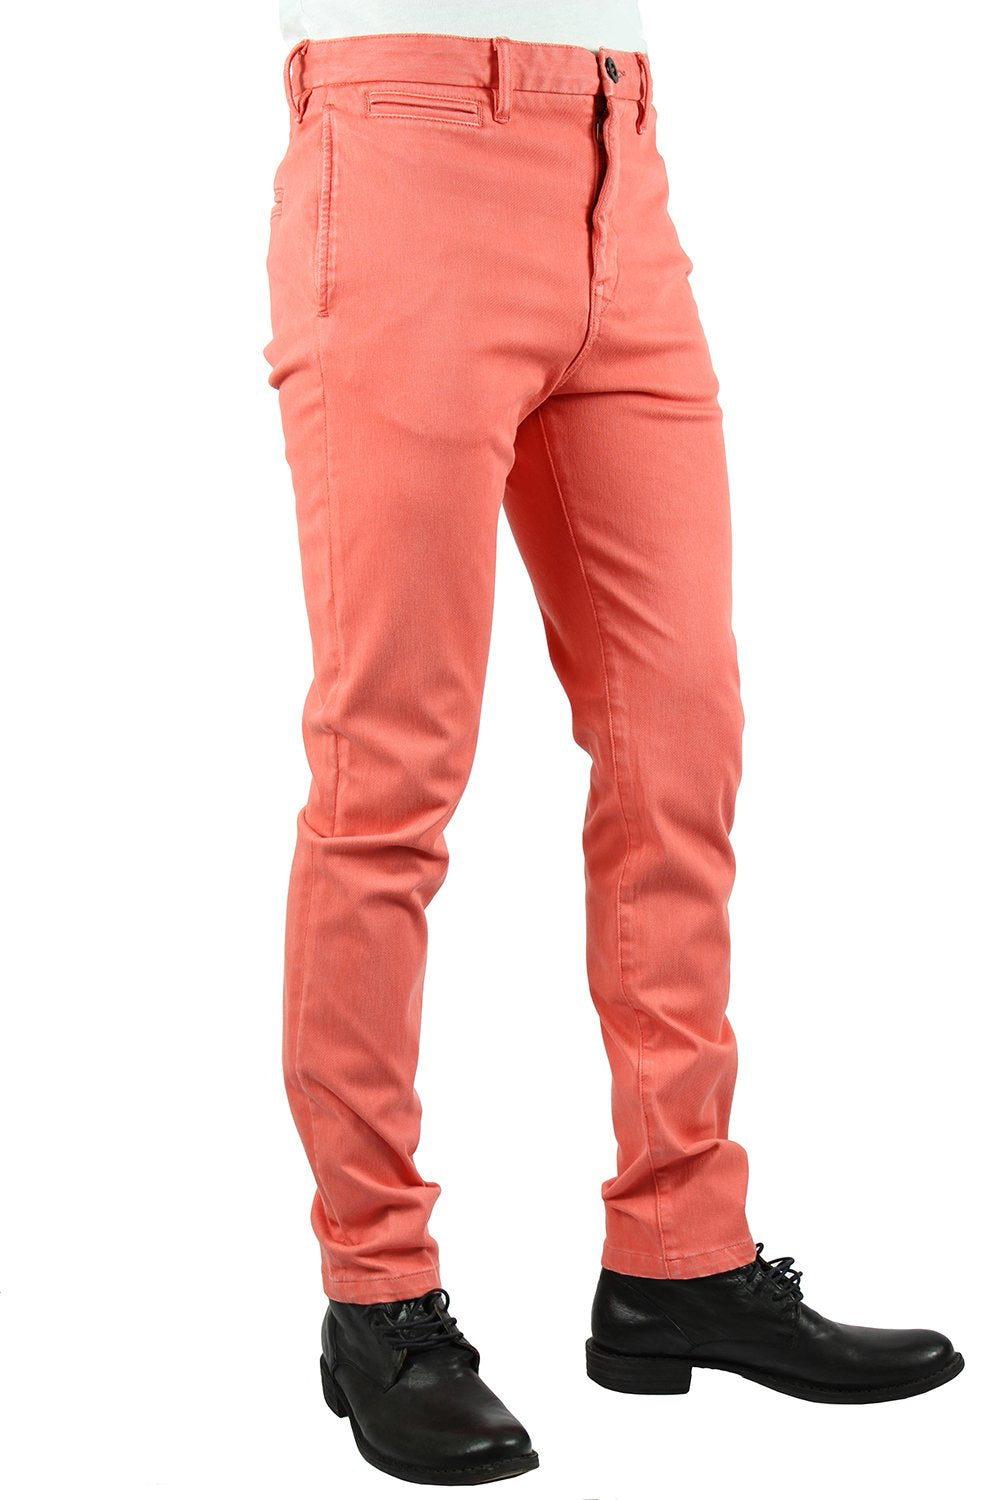 """The Axe""- Light Red Slim Chino 12oz 4Way Stretch French Terry"